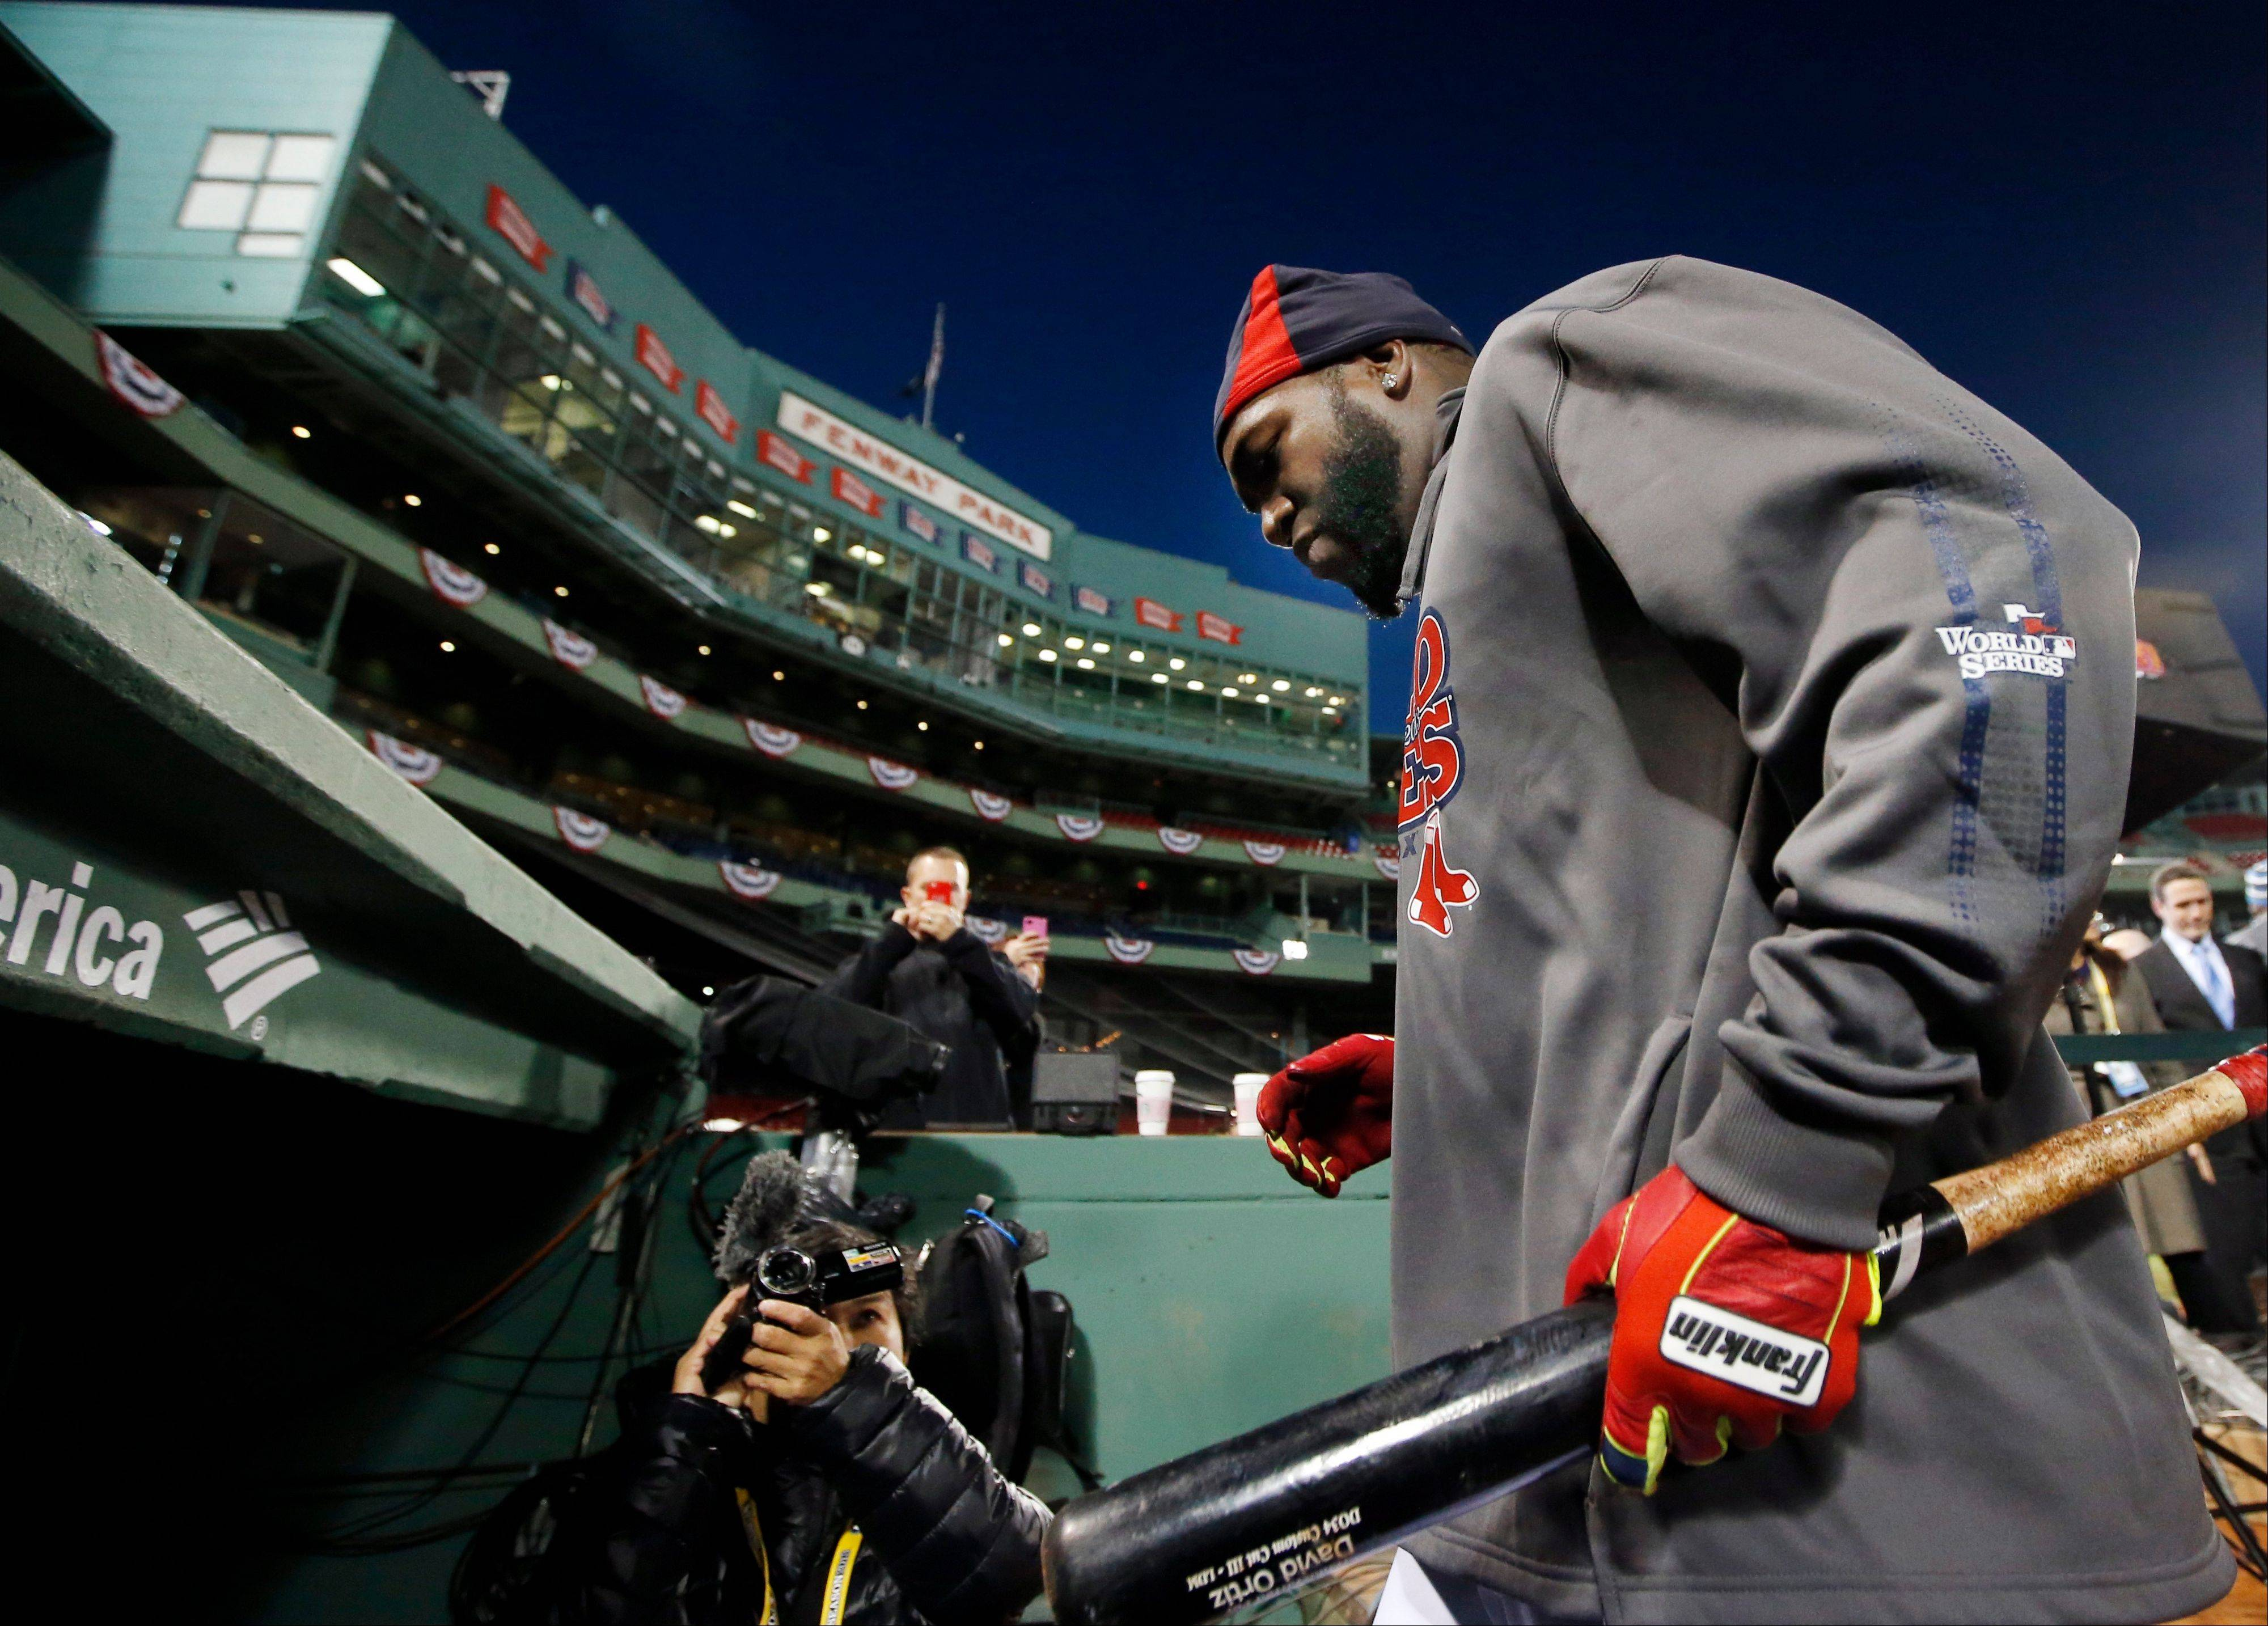 Boston Red Sox designated hitter David Ortiz walks into the dugout after a workout Tuesday at Fenway Park in Boston. The Red Sox are scheduled to host the St. Louis Cardinals in Game 6 of baseball�s World Series on Wednesday.